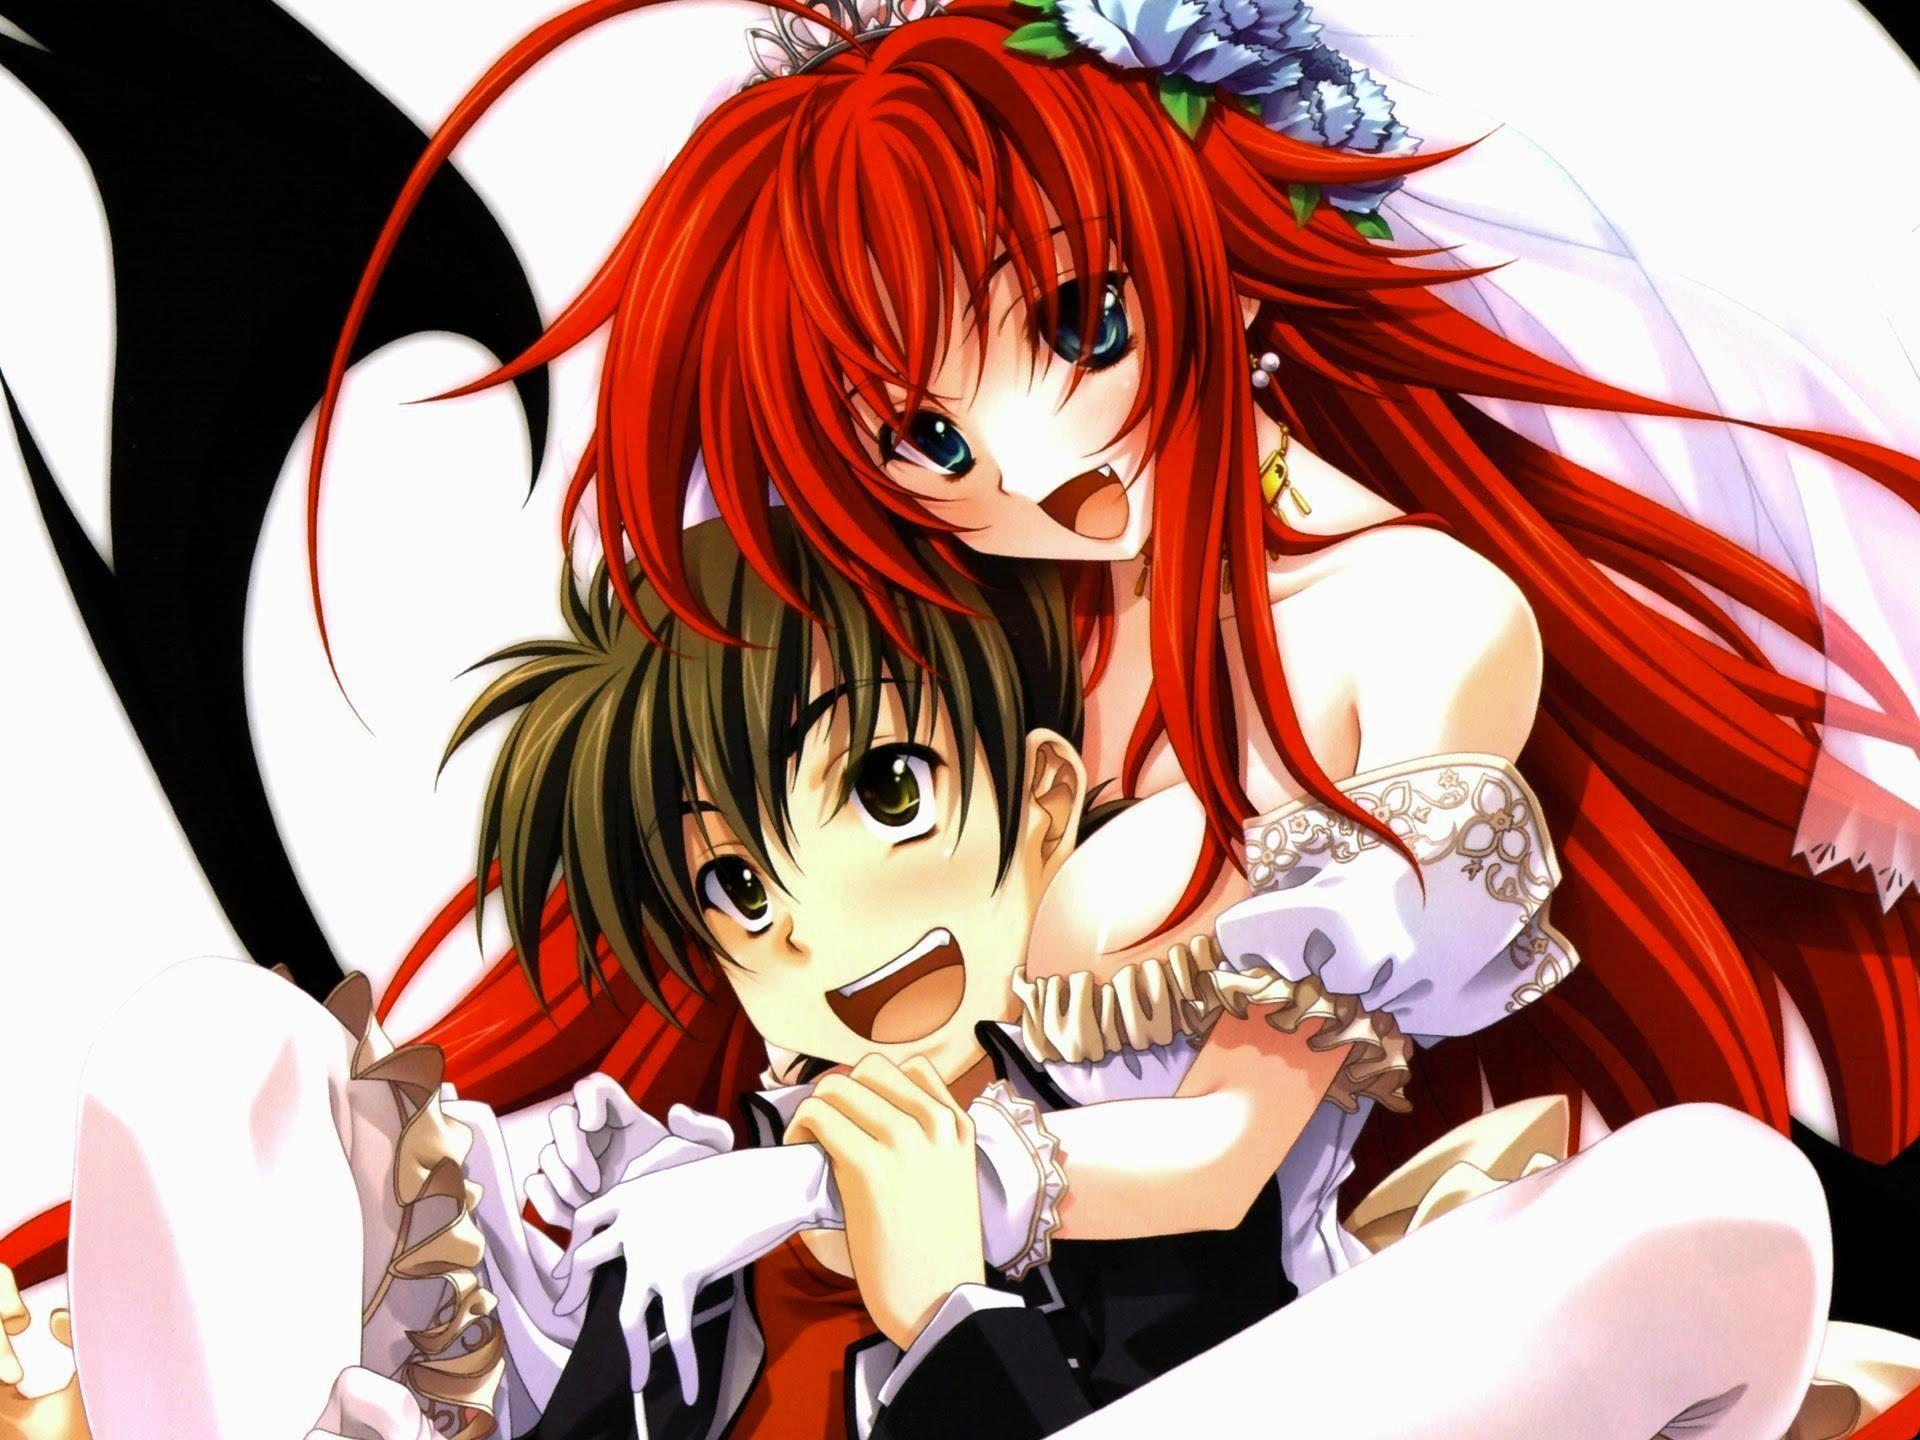 High School Dxd Wallpapers for Free Download, 45 High School Dxd